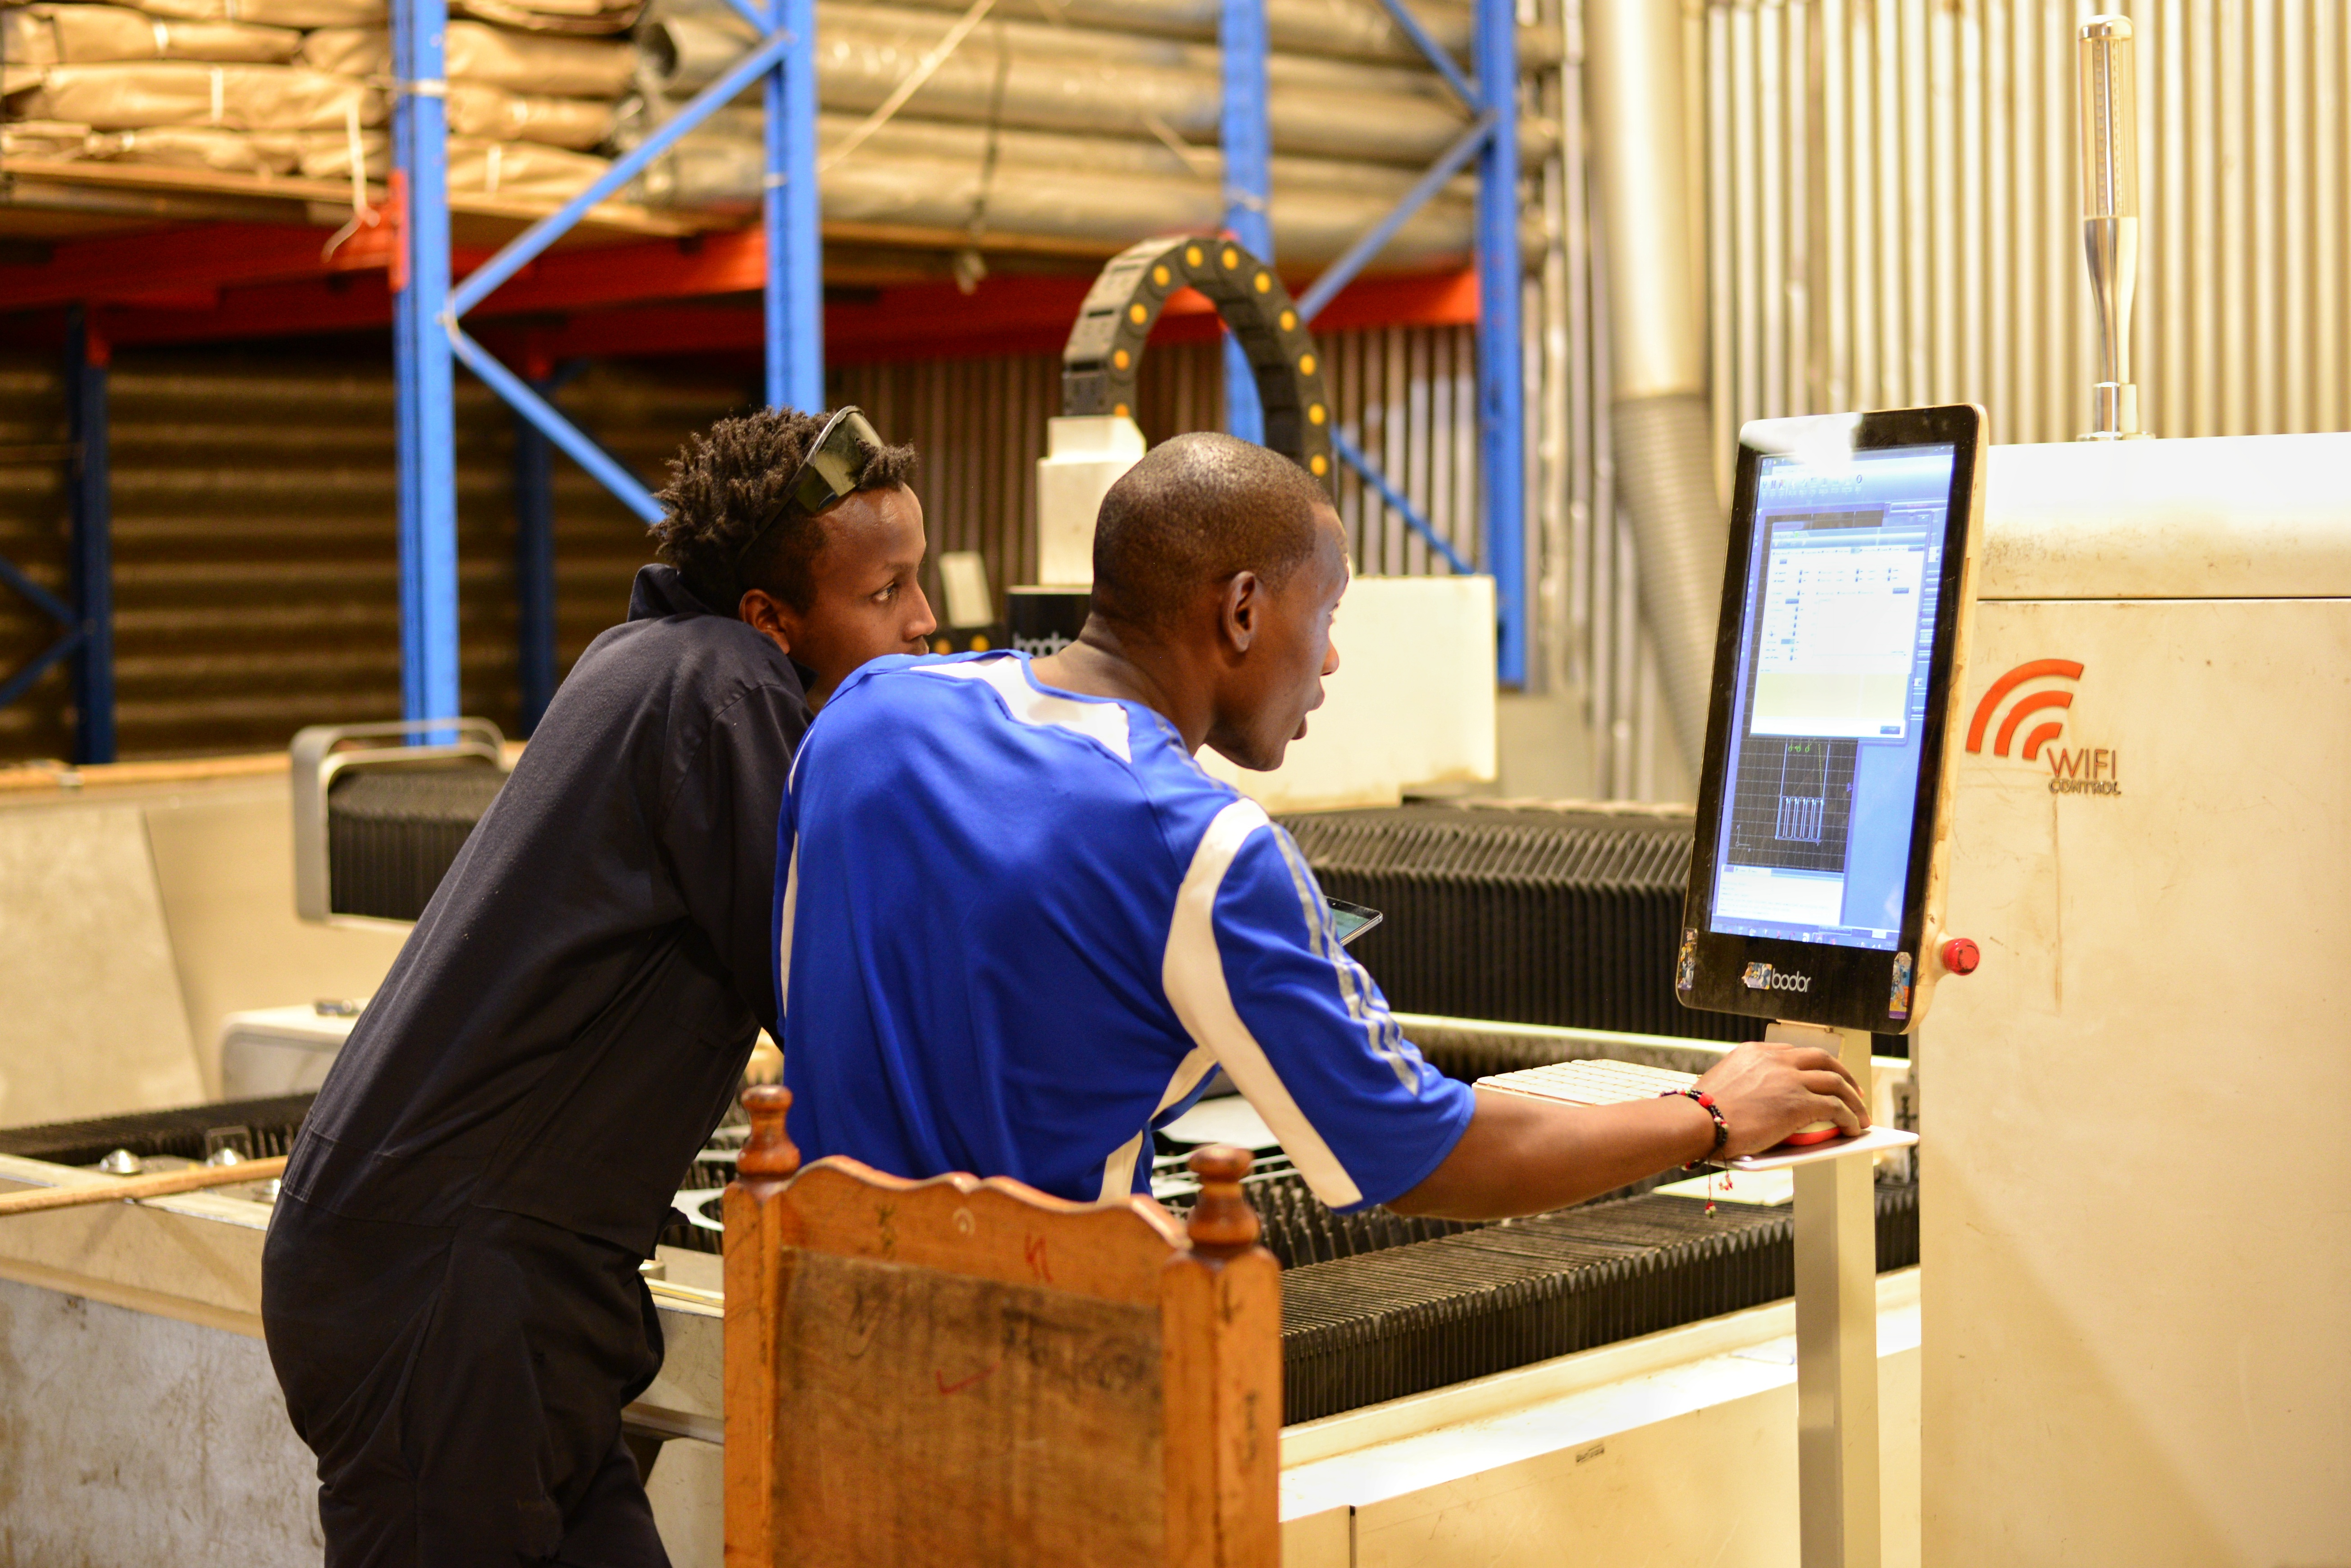 Two design engineers inputting a job on a CNC machine